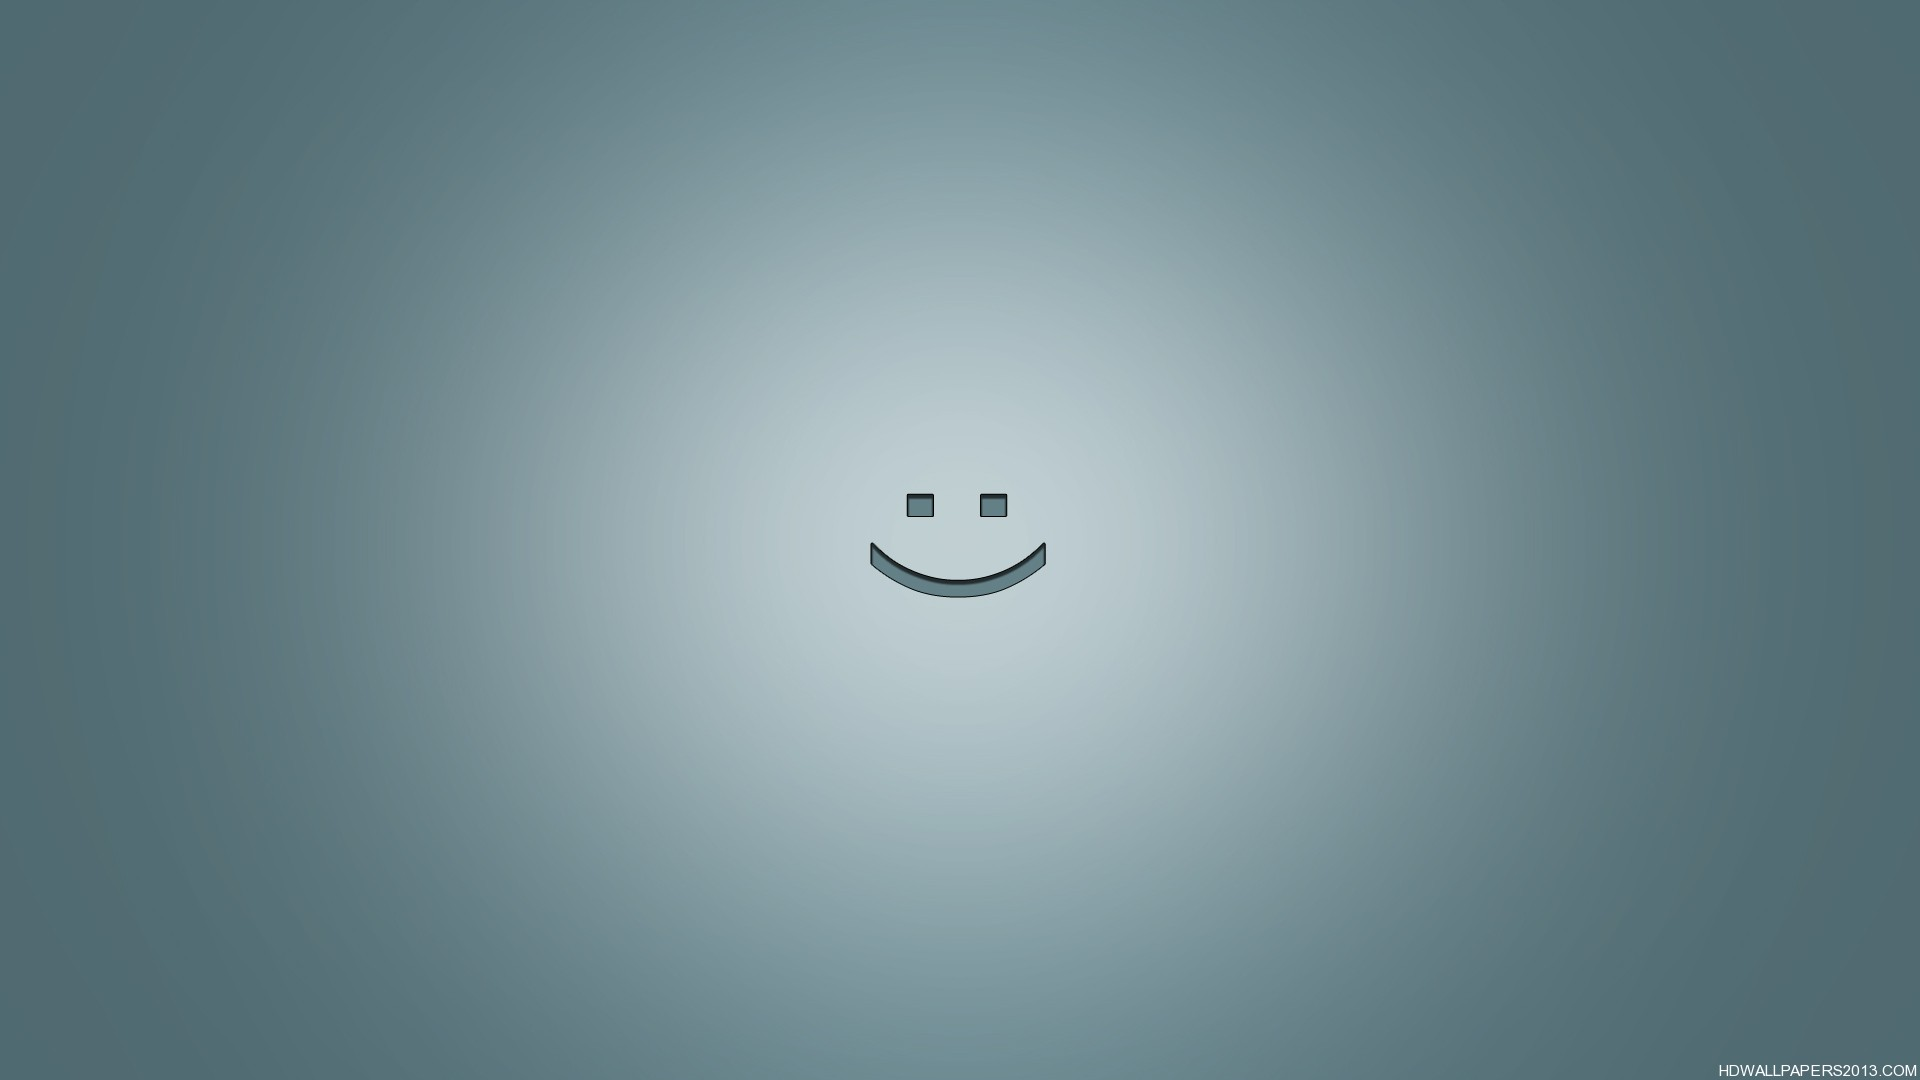 Smile wallpaper high definition wallpapers high for Define minimalist